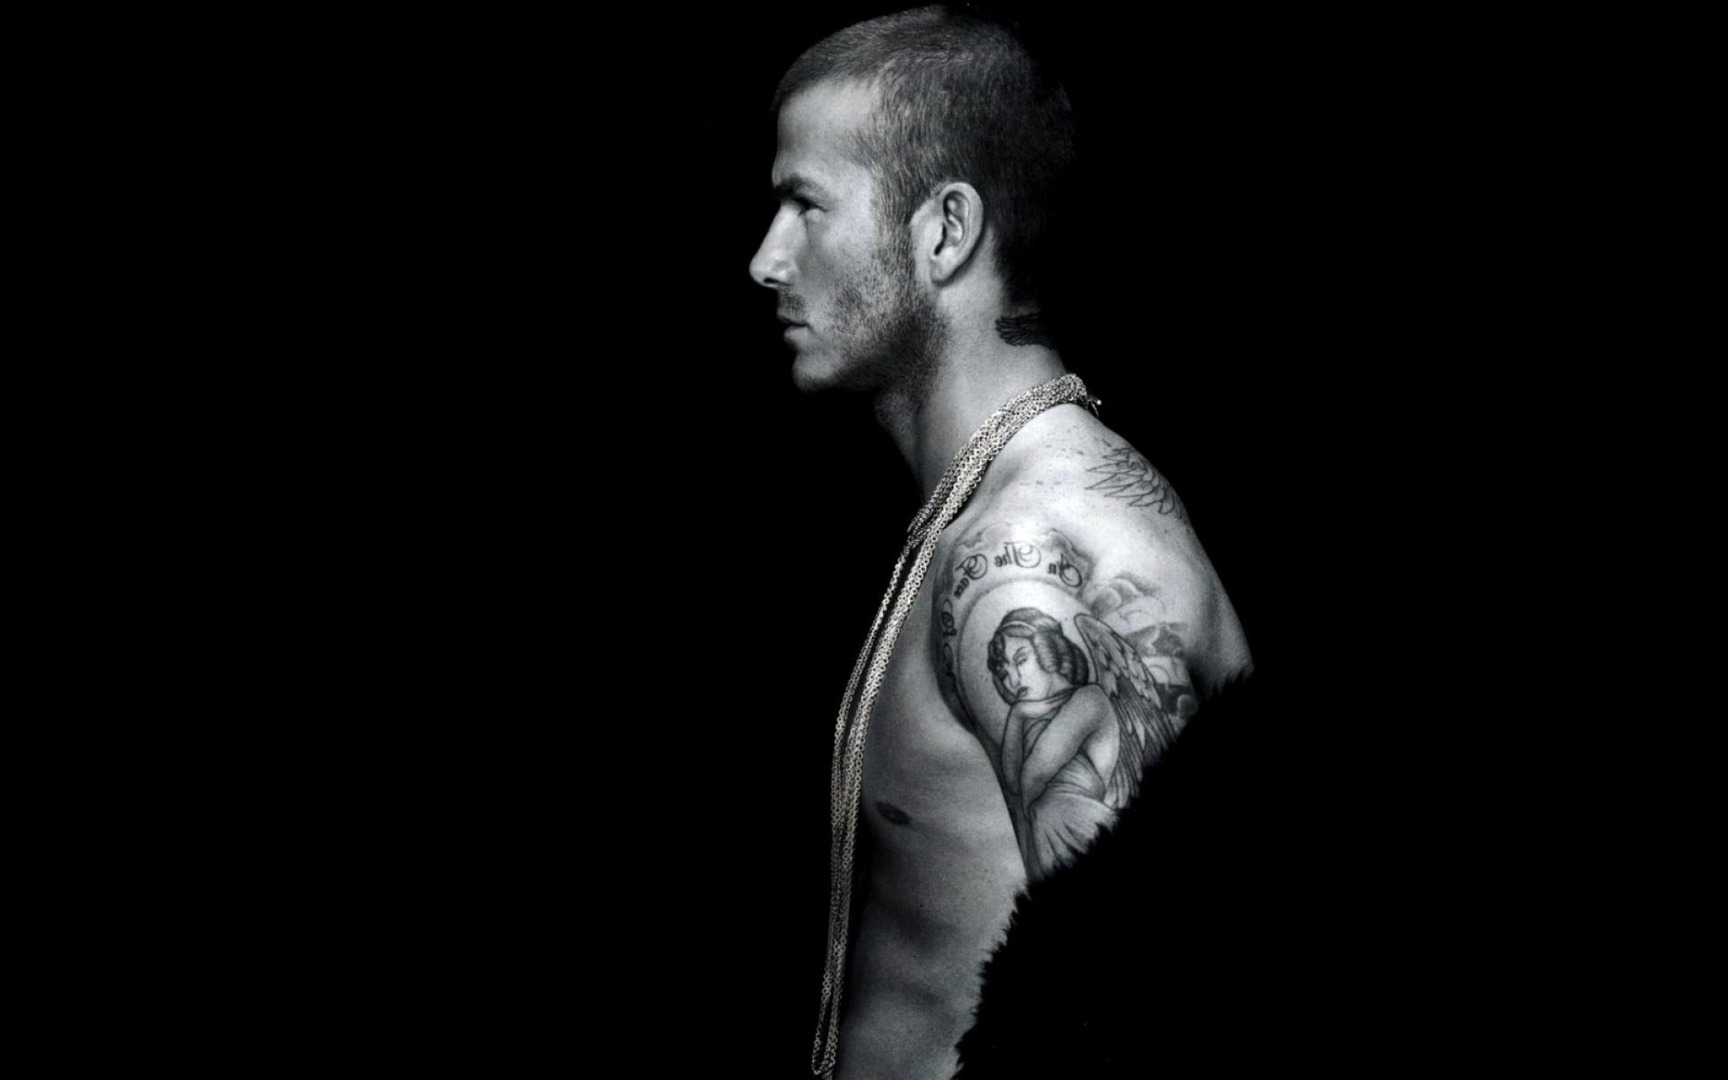 David Beckham Wallpapers   Wallpaper High Definition 1728x1080